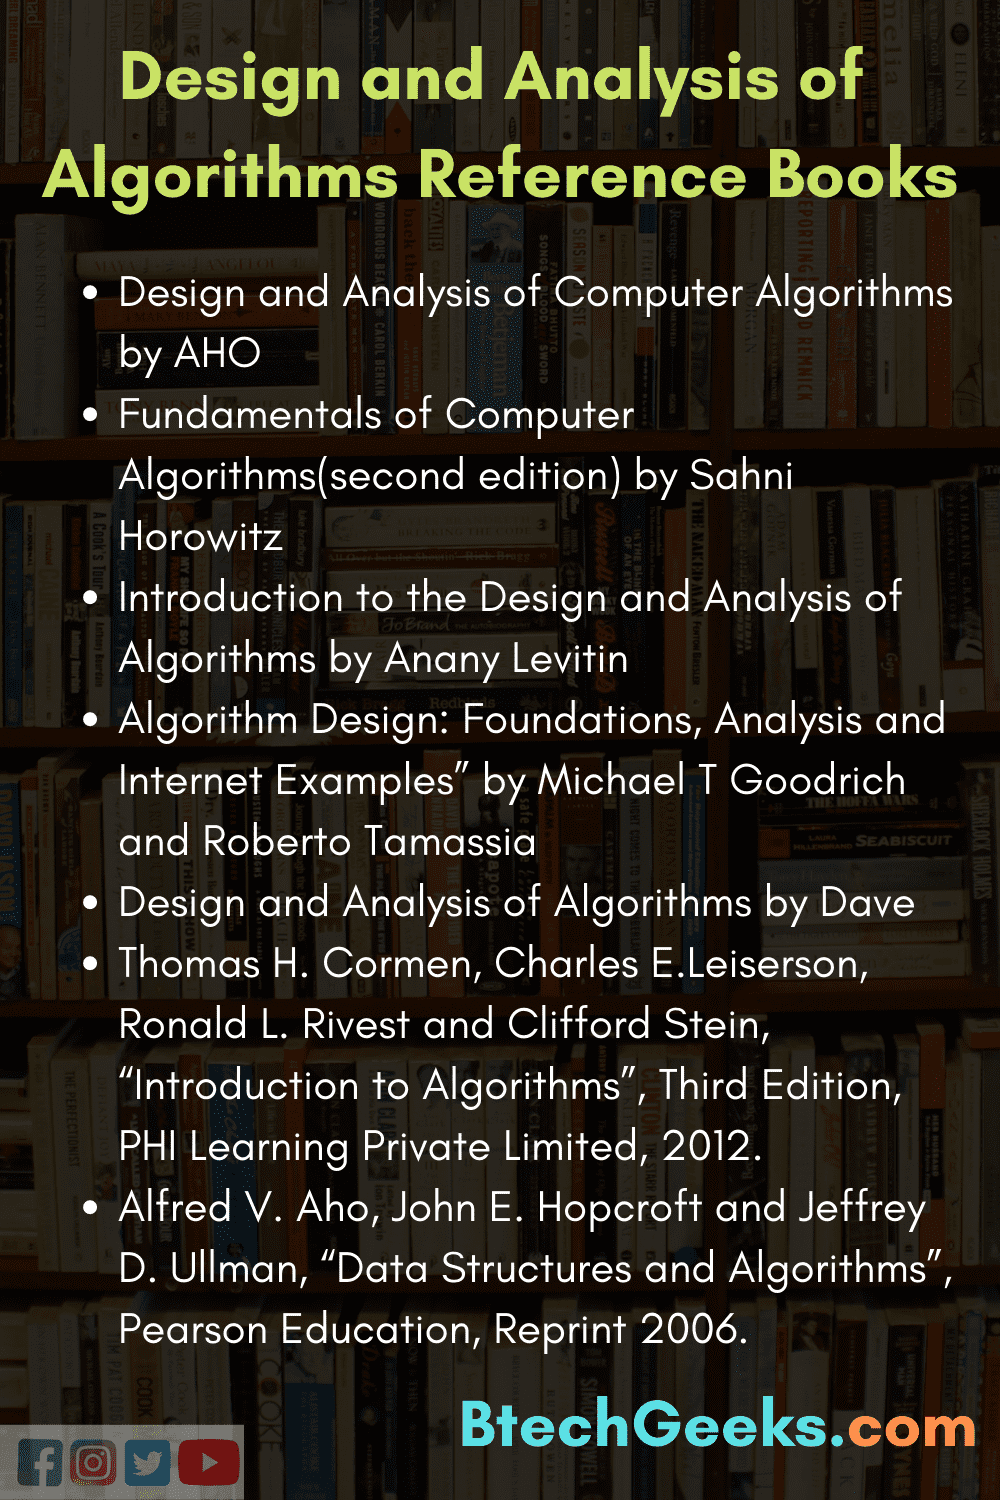 Design and Analysis of Algorithms Reference Books